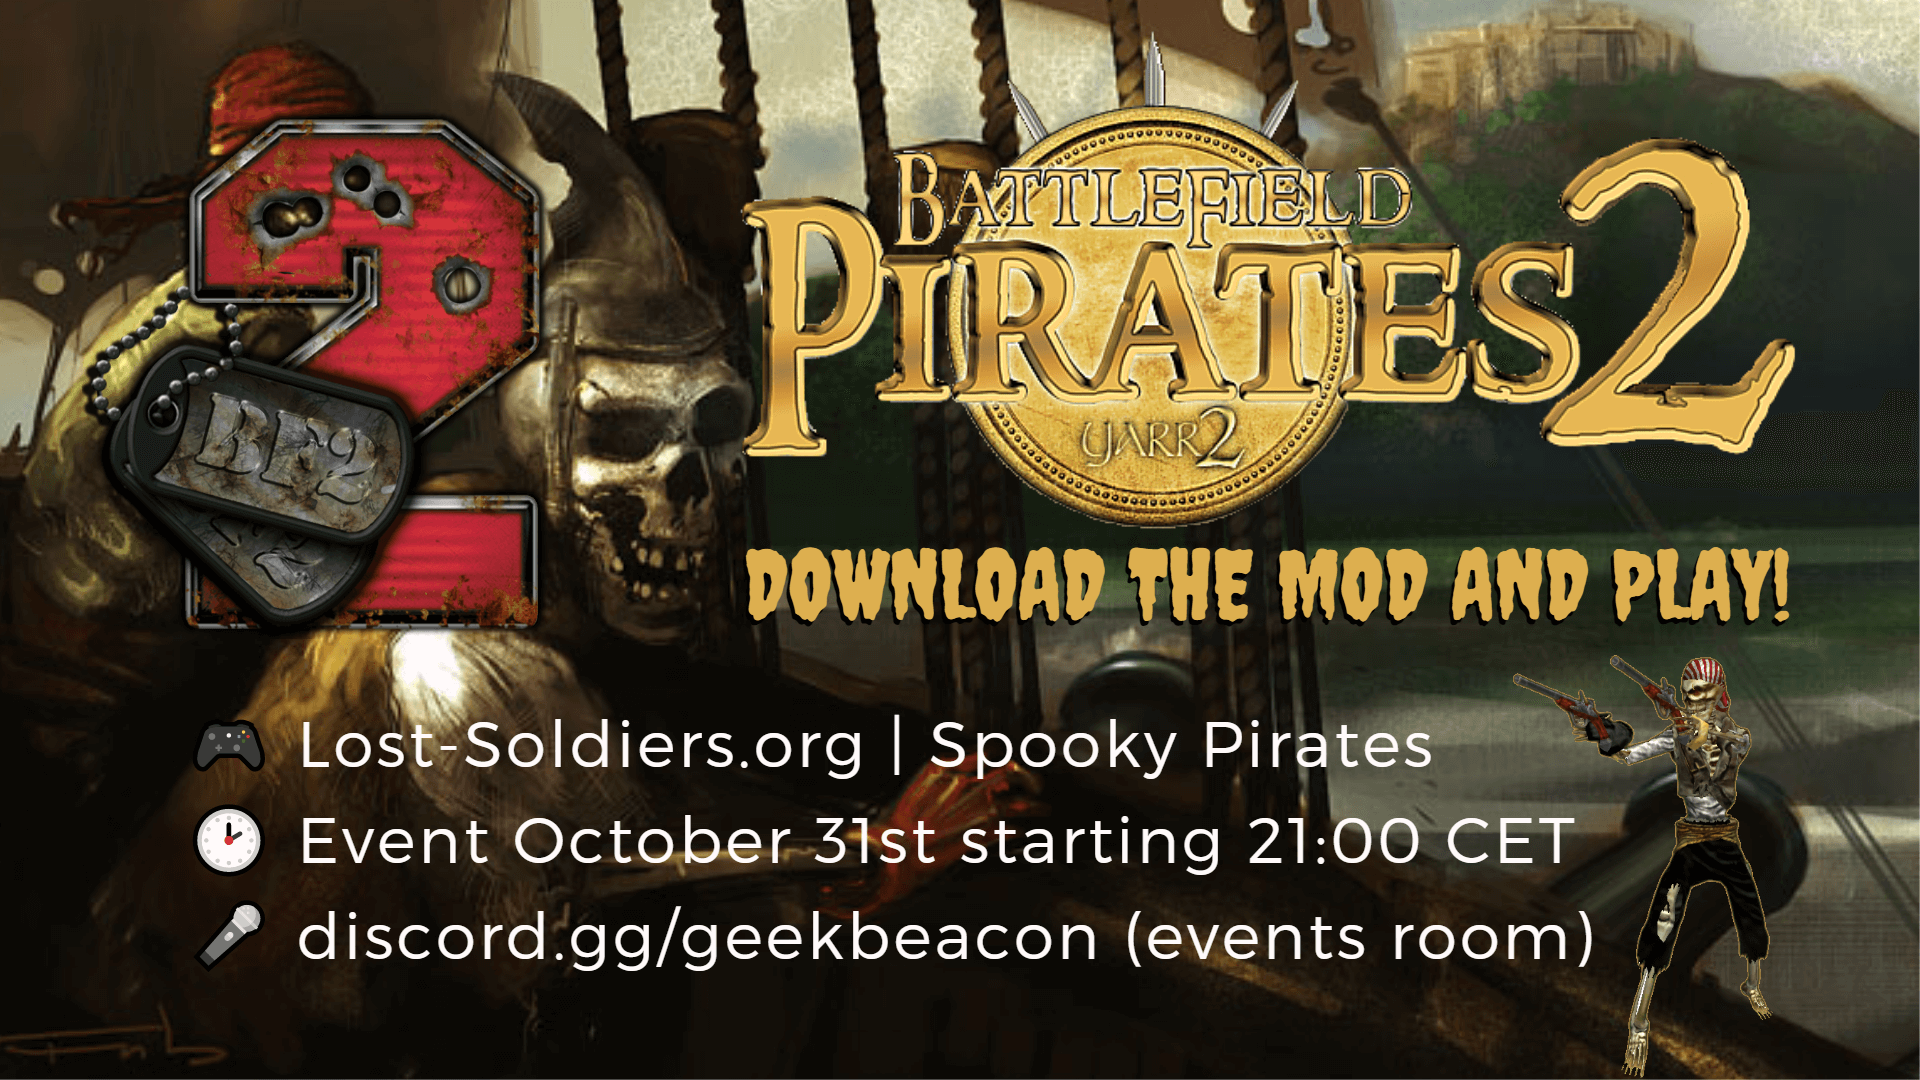 https://www.lost-soldiers.org/images/news-pics/Halloween-Pirates-Event-2020-min.png